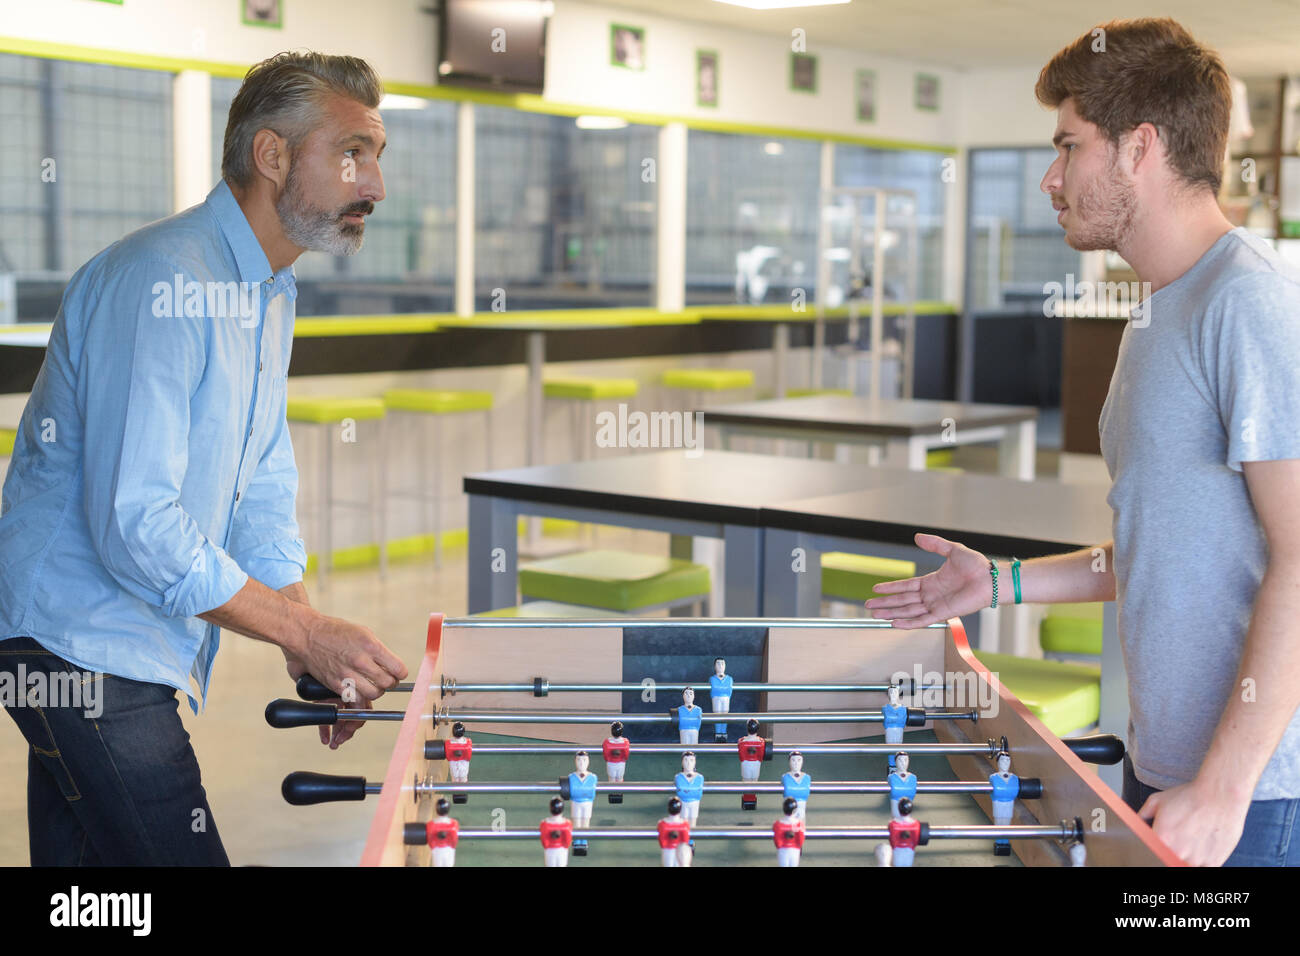 table soccer playing - Stock Image